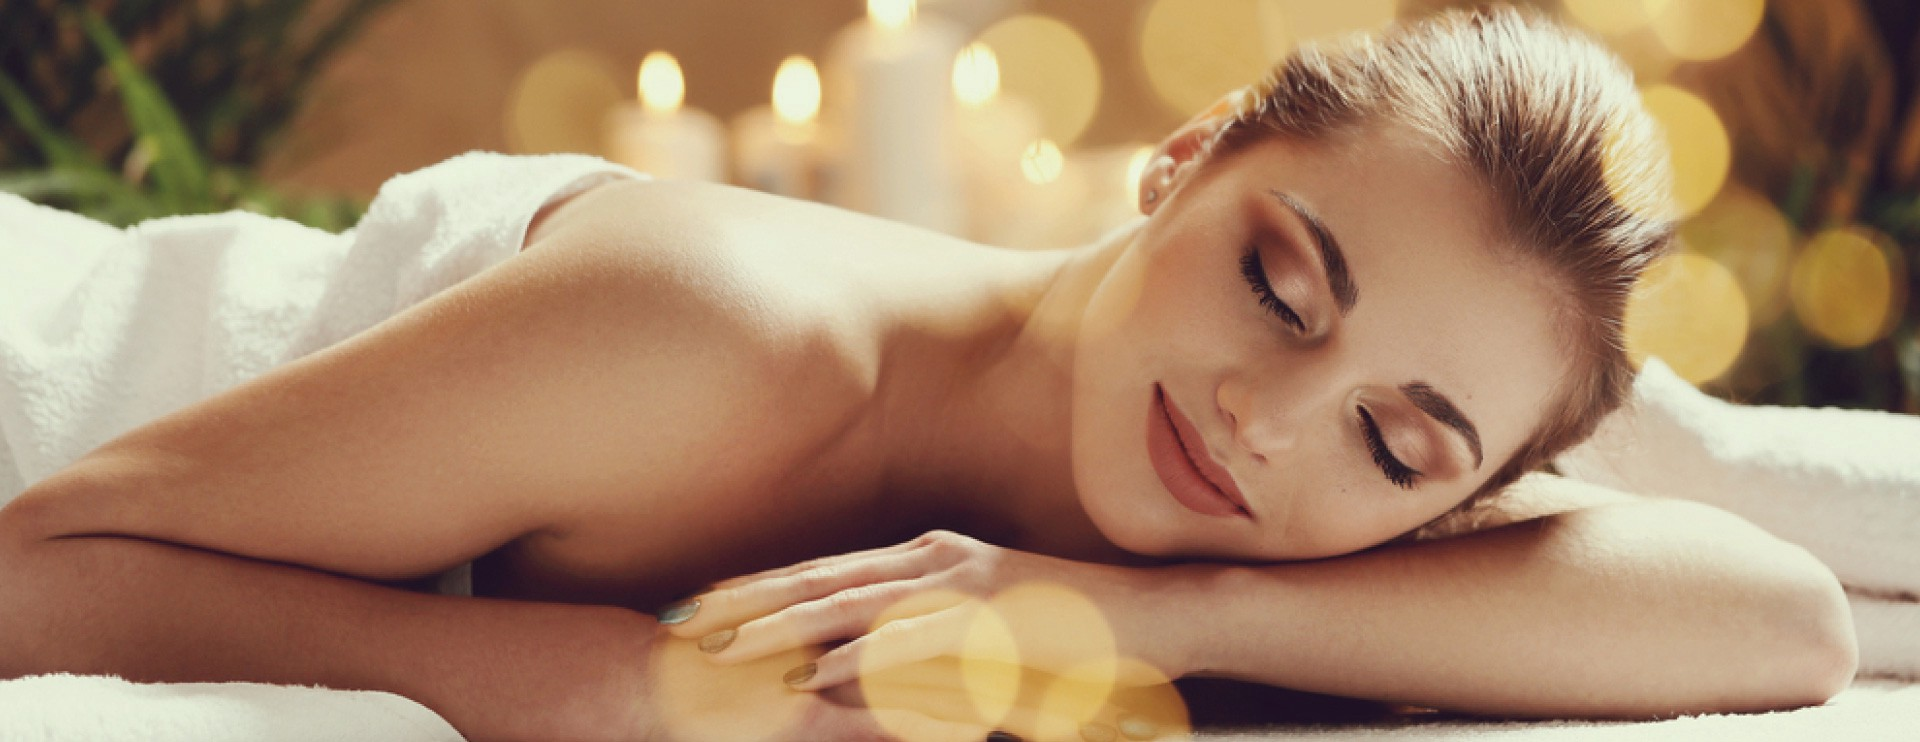 https://medium.com/@serenaspa/8-surprising-benefits-of-a-full-body-massage-fab2399f4103